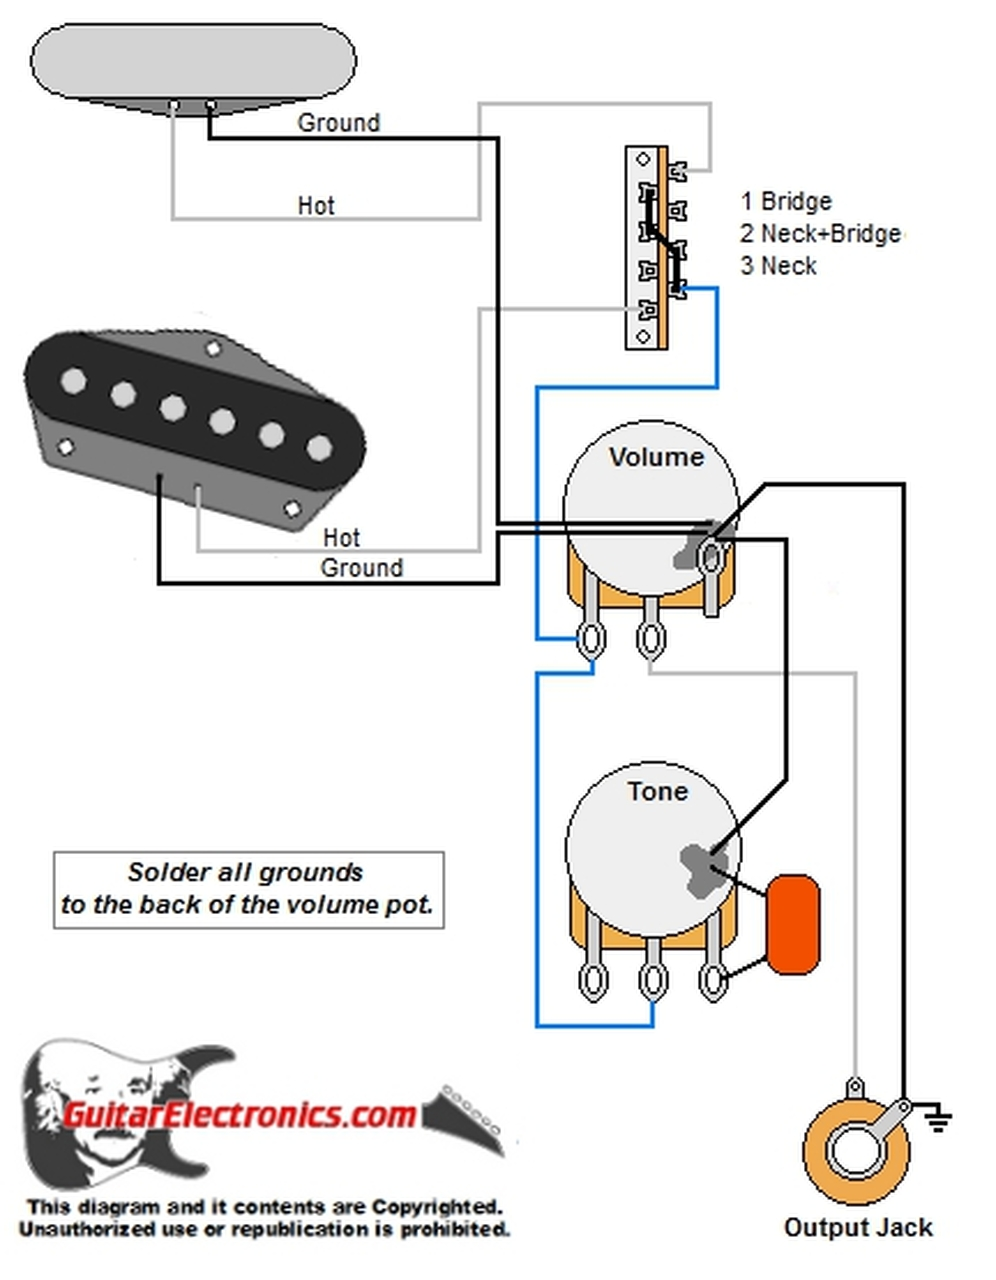 Tele Style Guitar Wiring Diagram | Guitar Electronics Wiring Diagrams |  | Guitar Electronics